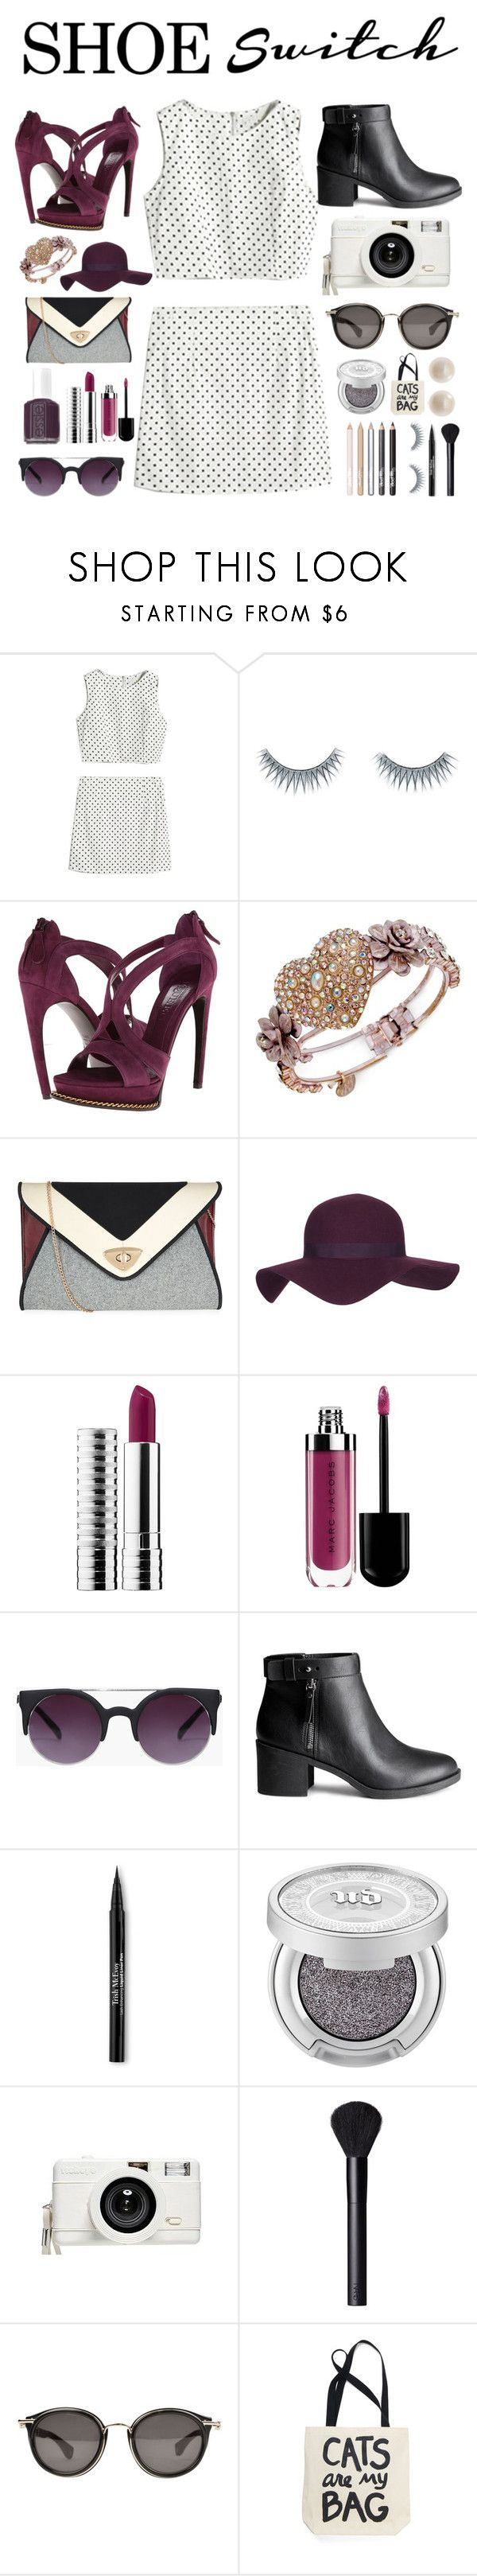 """clueless #8"" by hannahbees ❤ liked on Polyvore featuring Pop Beauty, Napoleon Perdis, Alexander McQueen, Betsey Johnson, Topshop, Clinique, Essie, H&M, Trish McEvoy and Urban Decay"